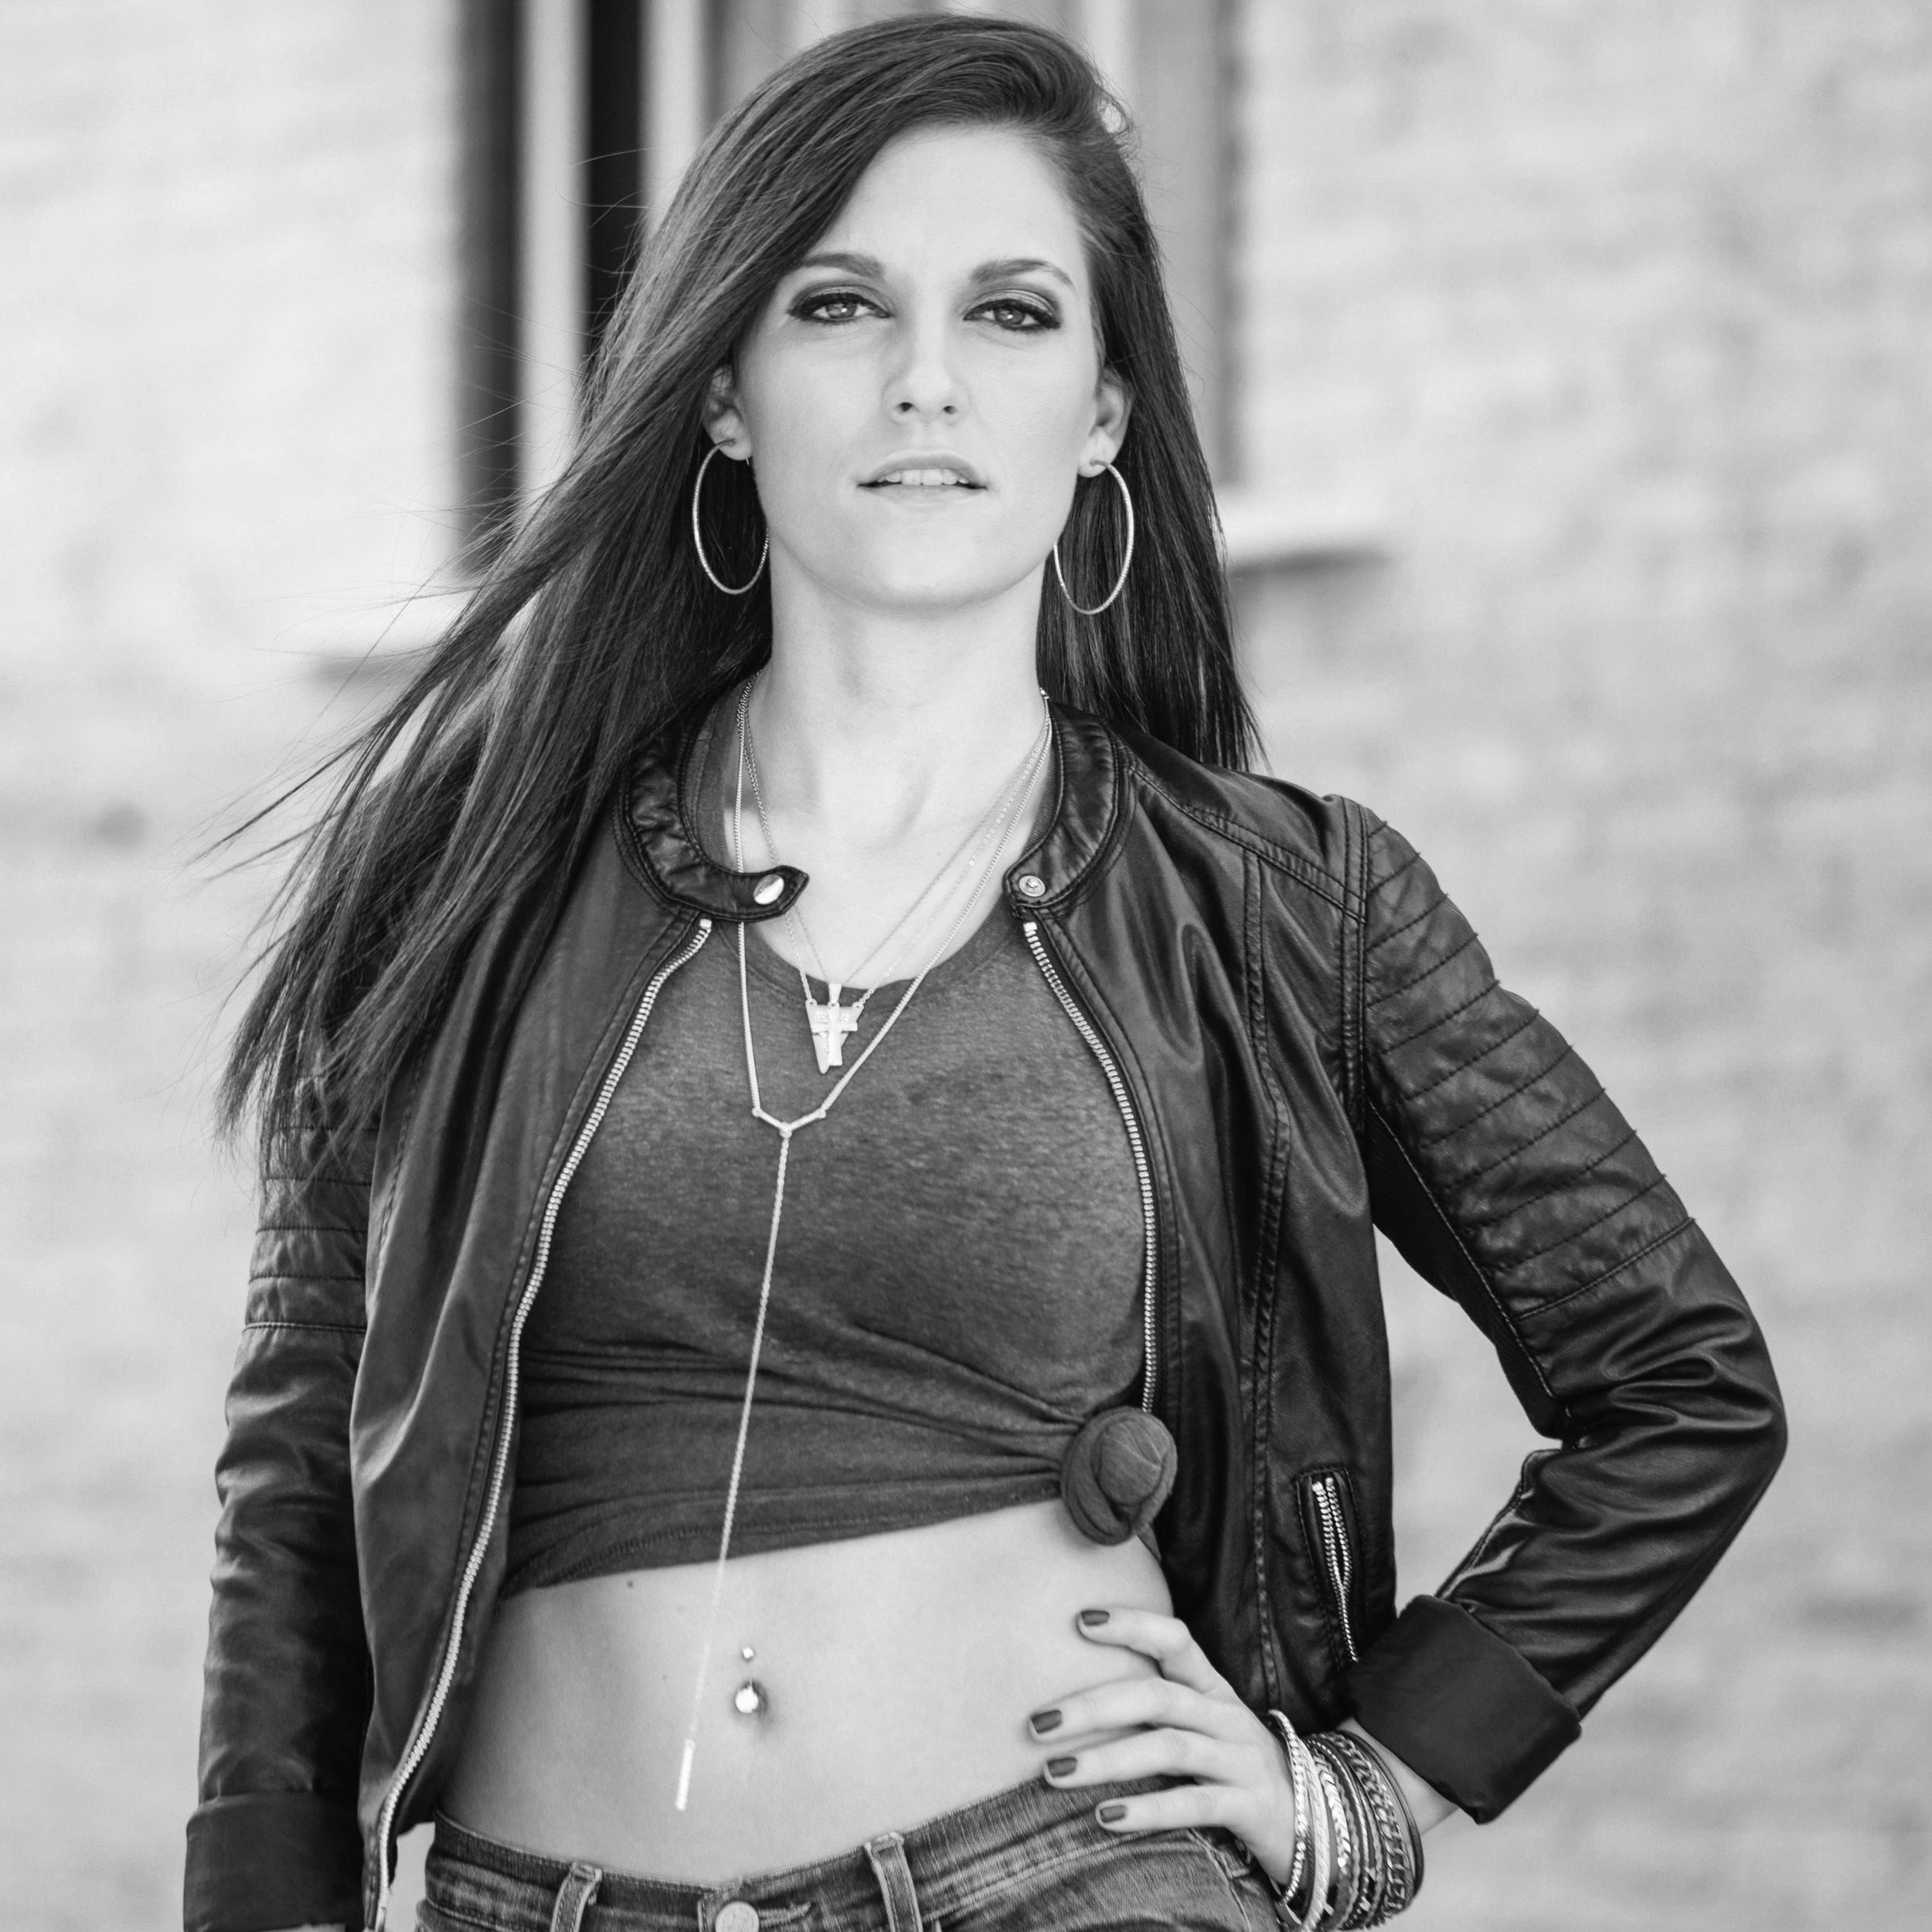 KaseyTyndall_2017_Square_B&W_PromoPicture_photocredit_AaronStearns.jpg